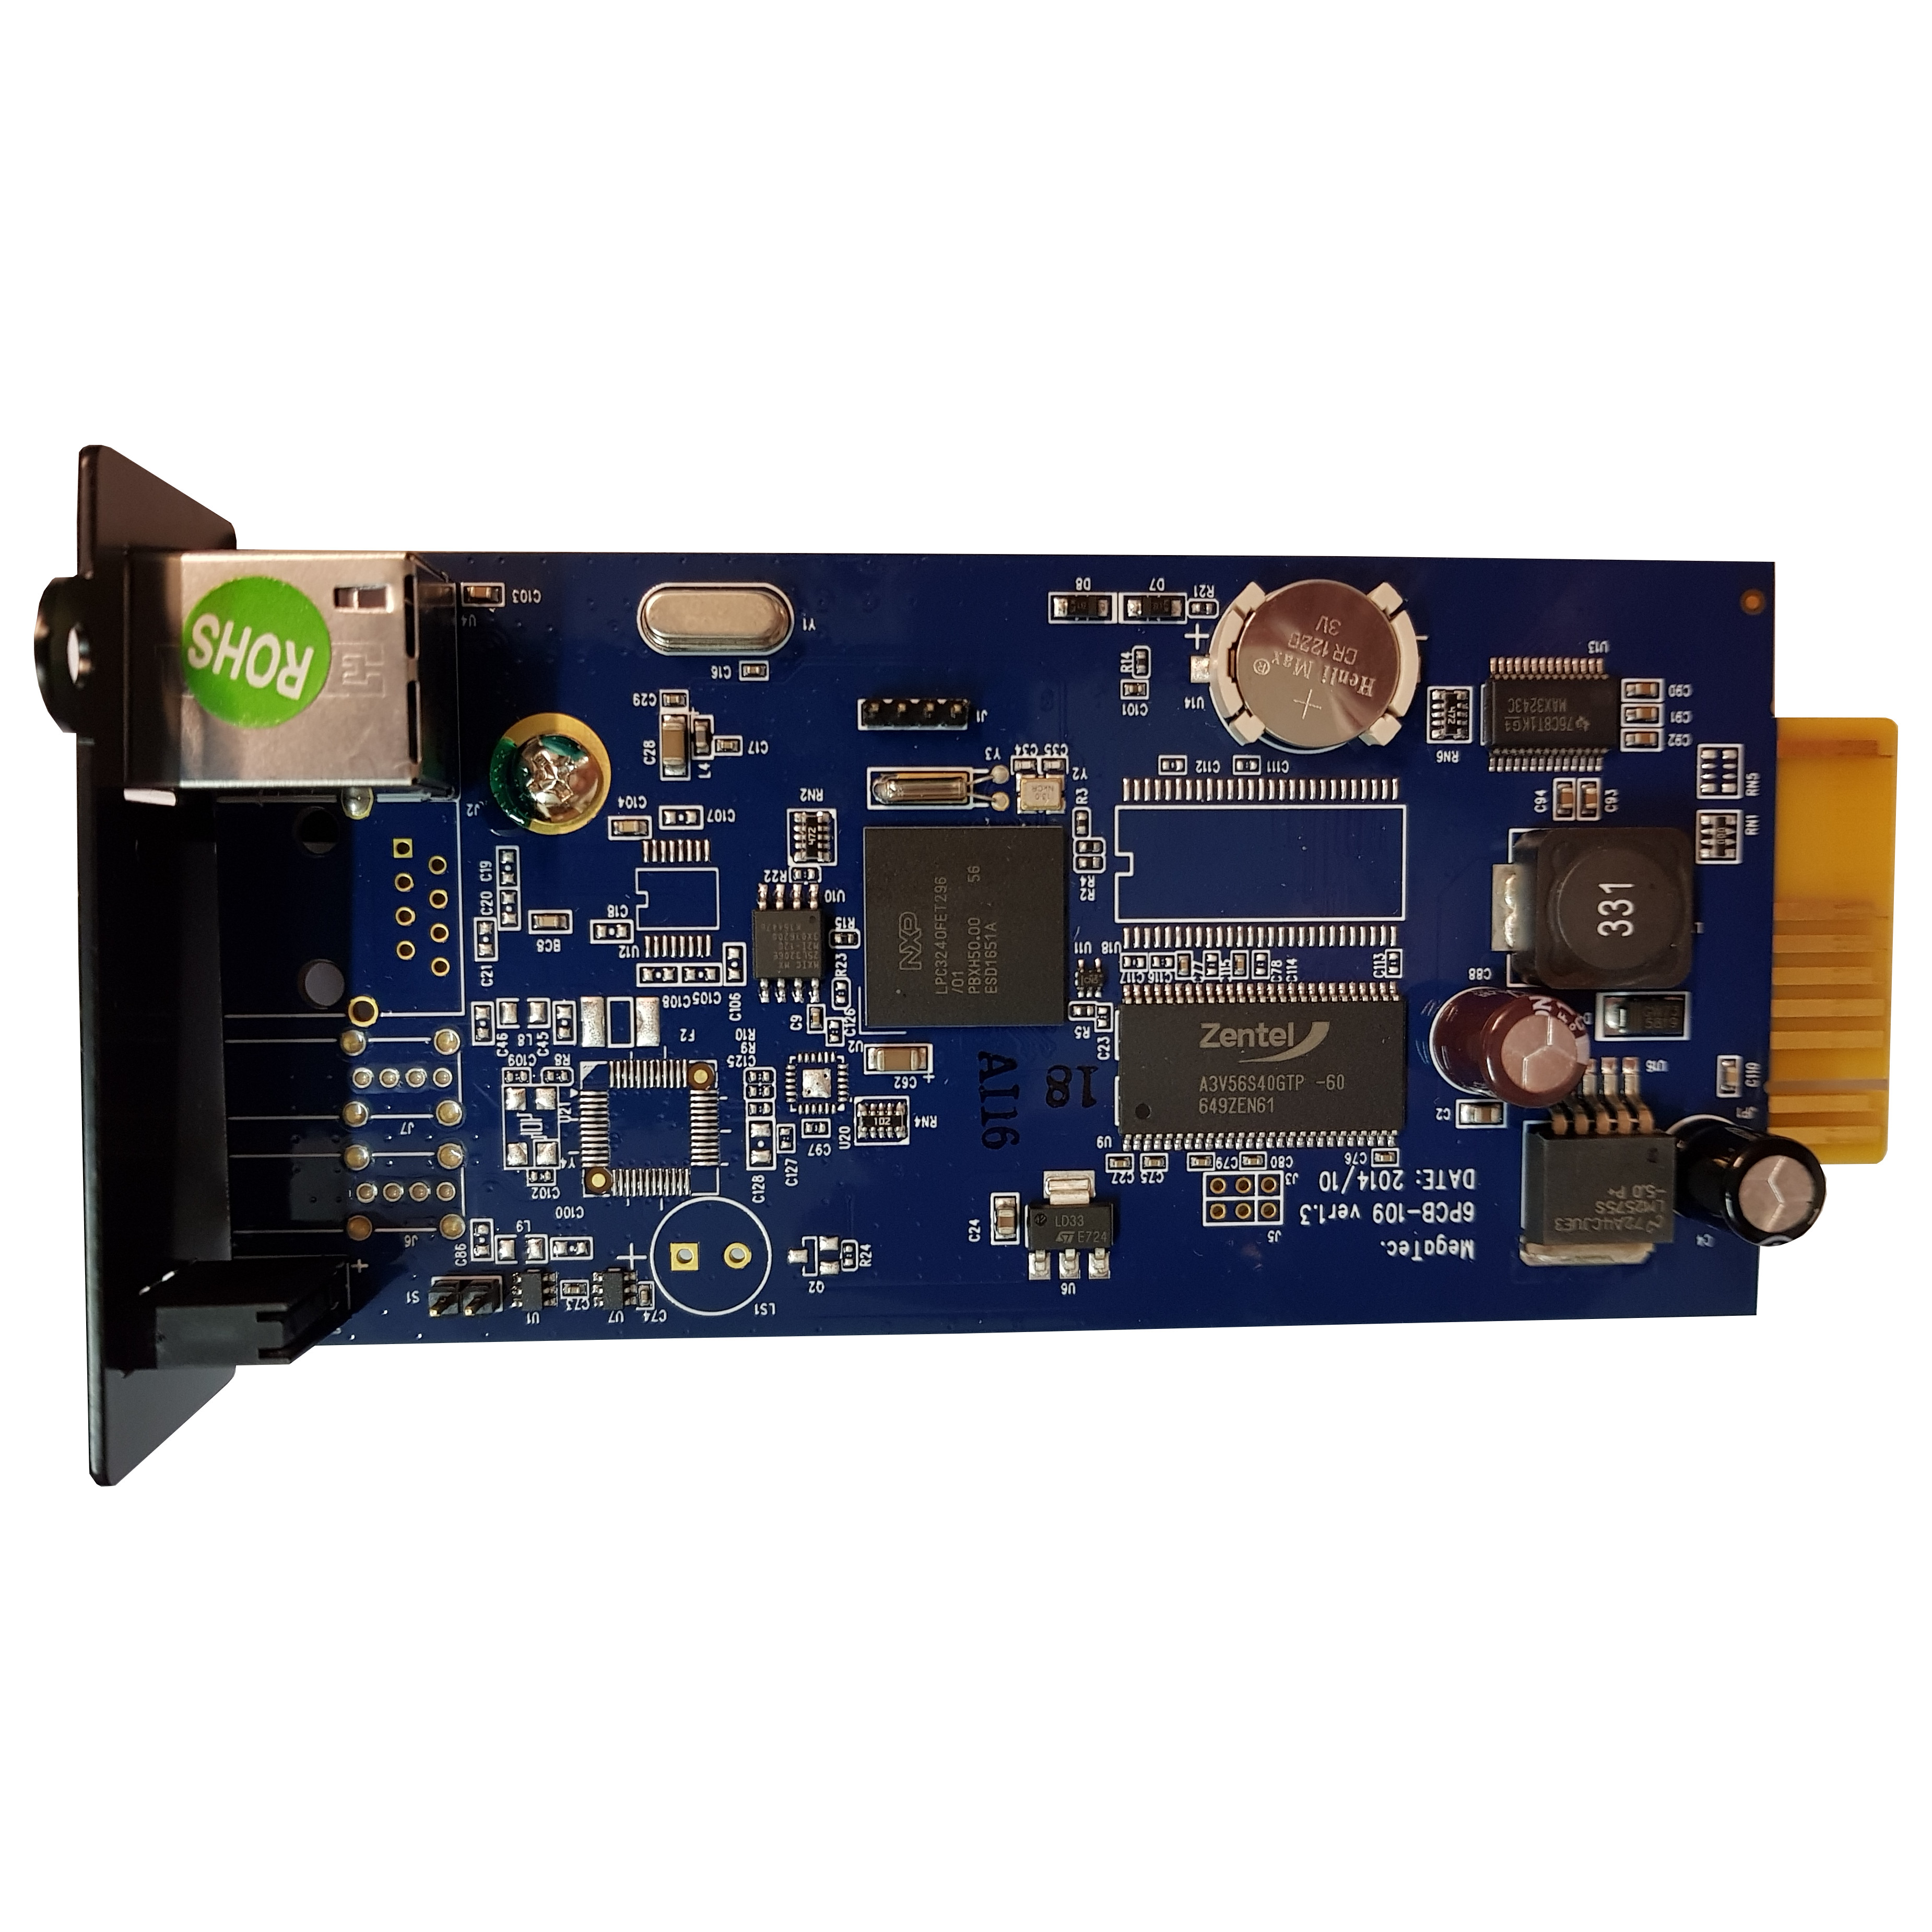 SNMP card CY504 for YDC33 series, MP S 6-10KVA | LARICE | SNMP card CY504